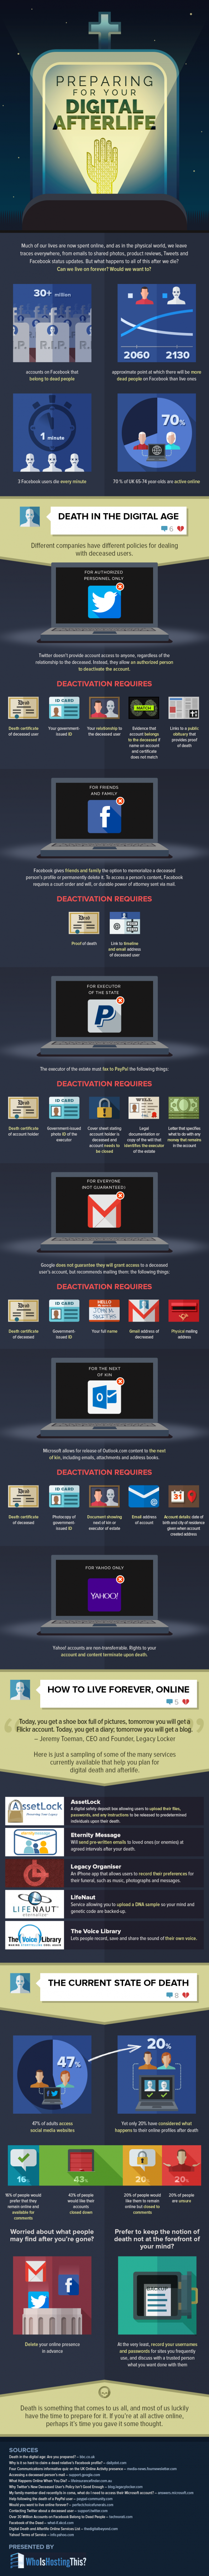 Preparing for Your Digital Afterlife [Infographic]